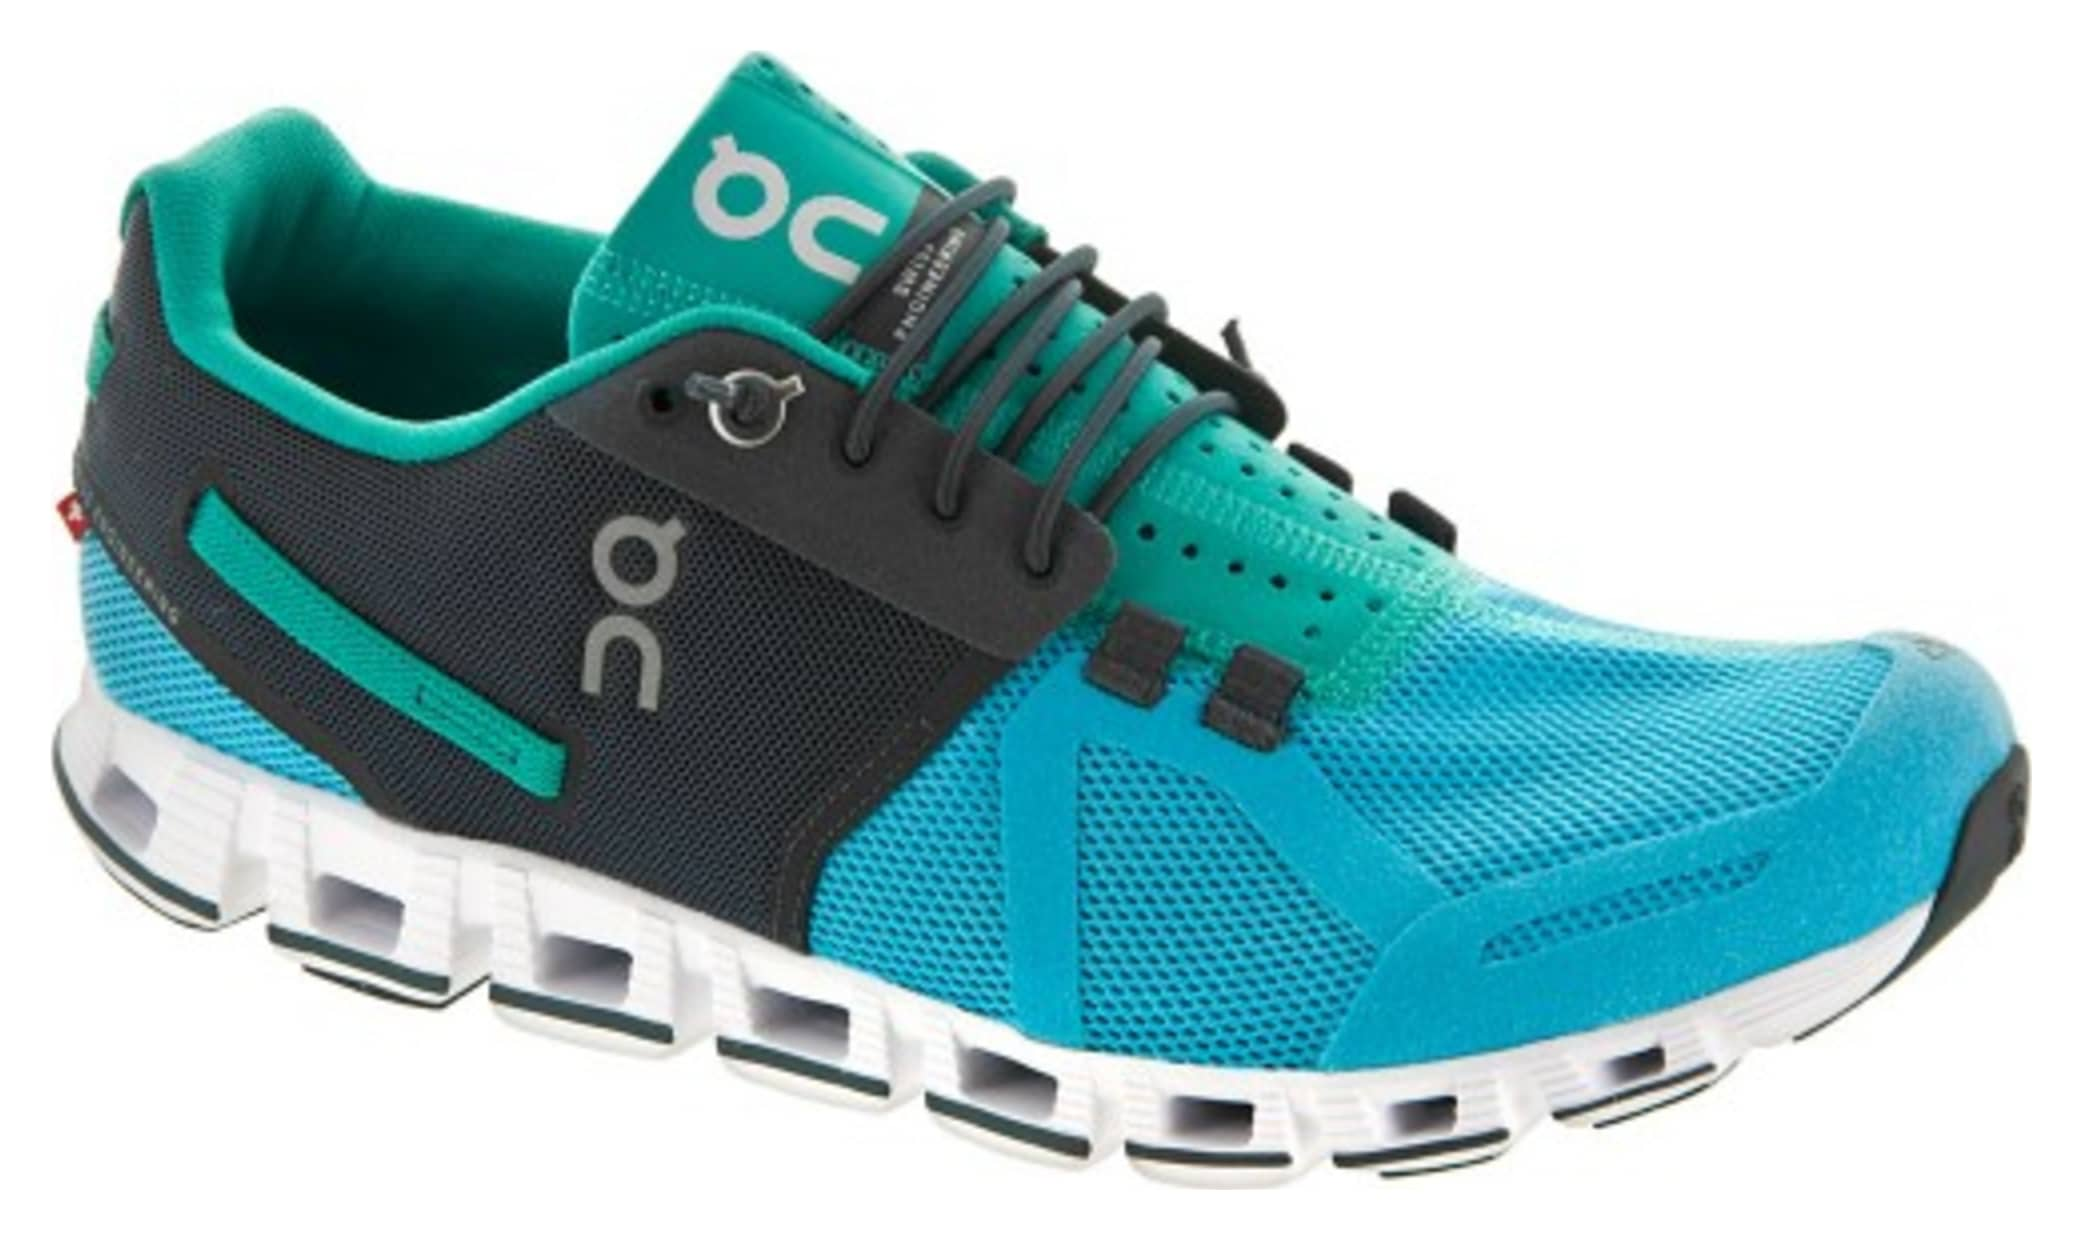 on women 39 s cloud running shoe atoll green 7 5. Black Bedroom Furniture Sets. Home Design Ideas